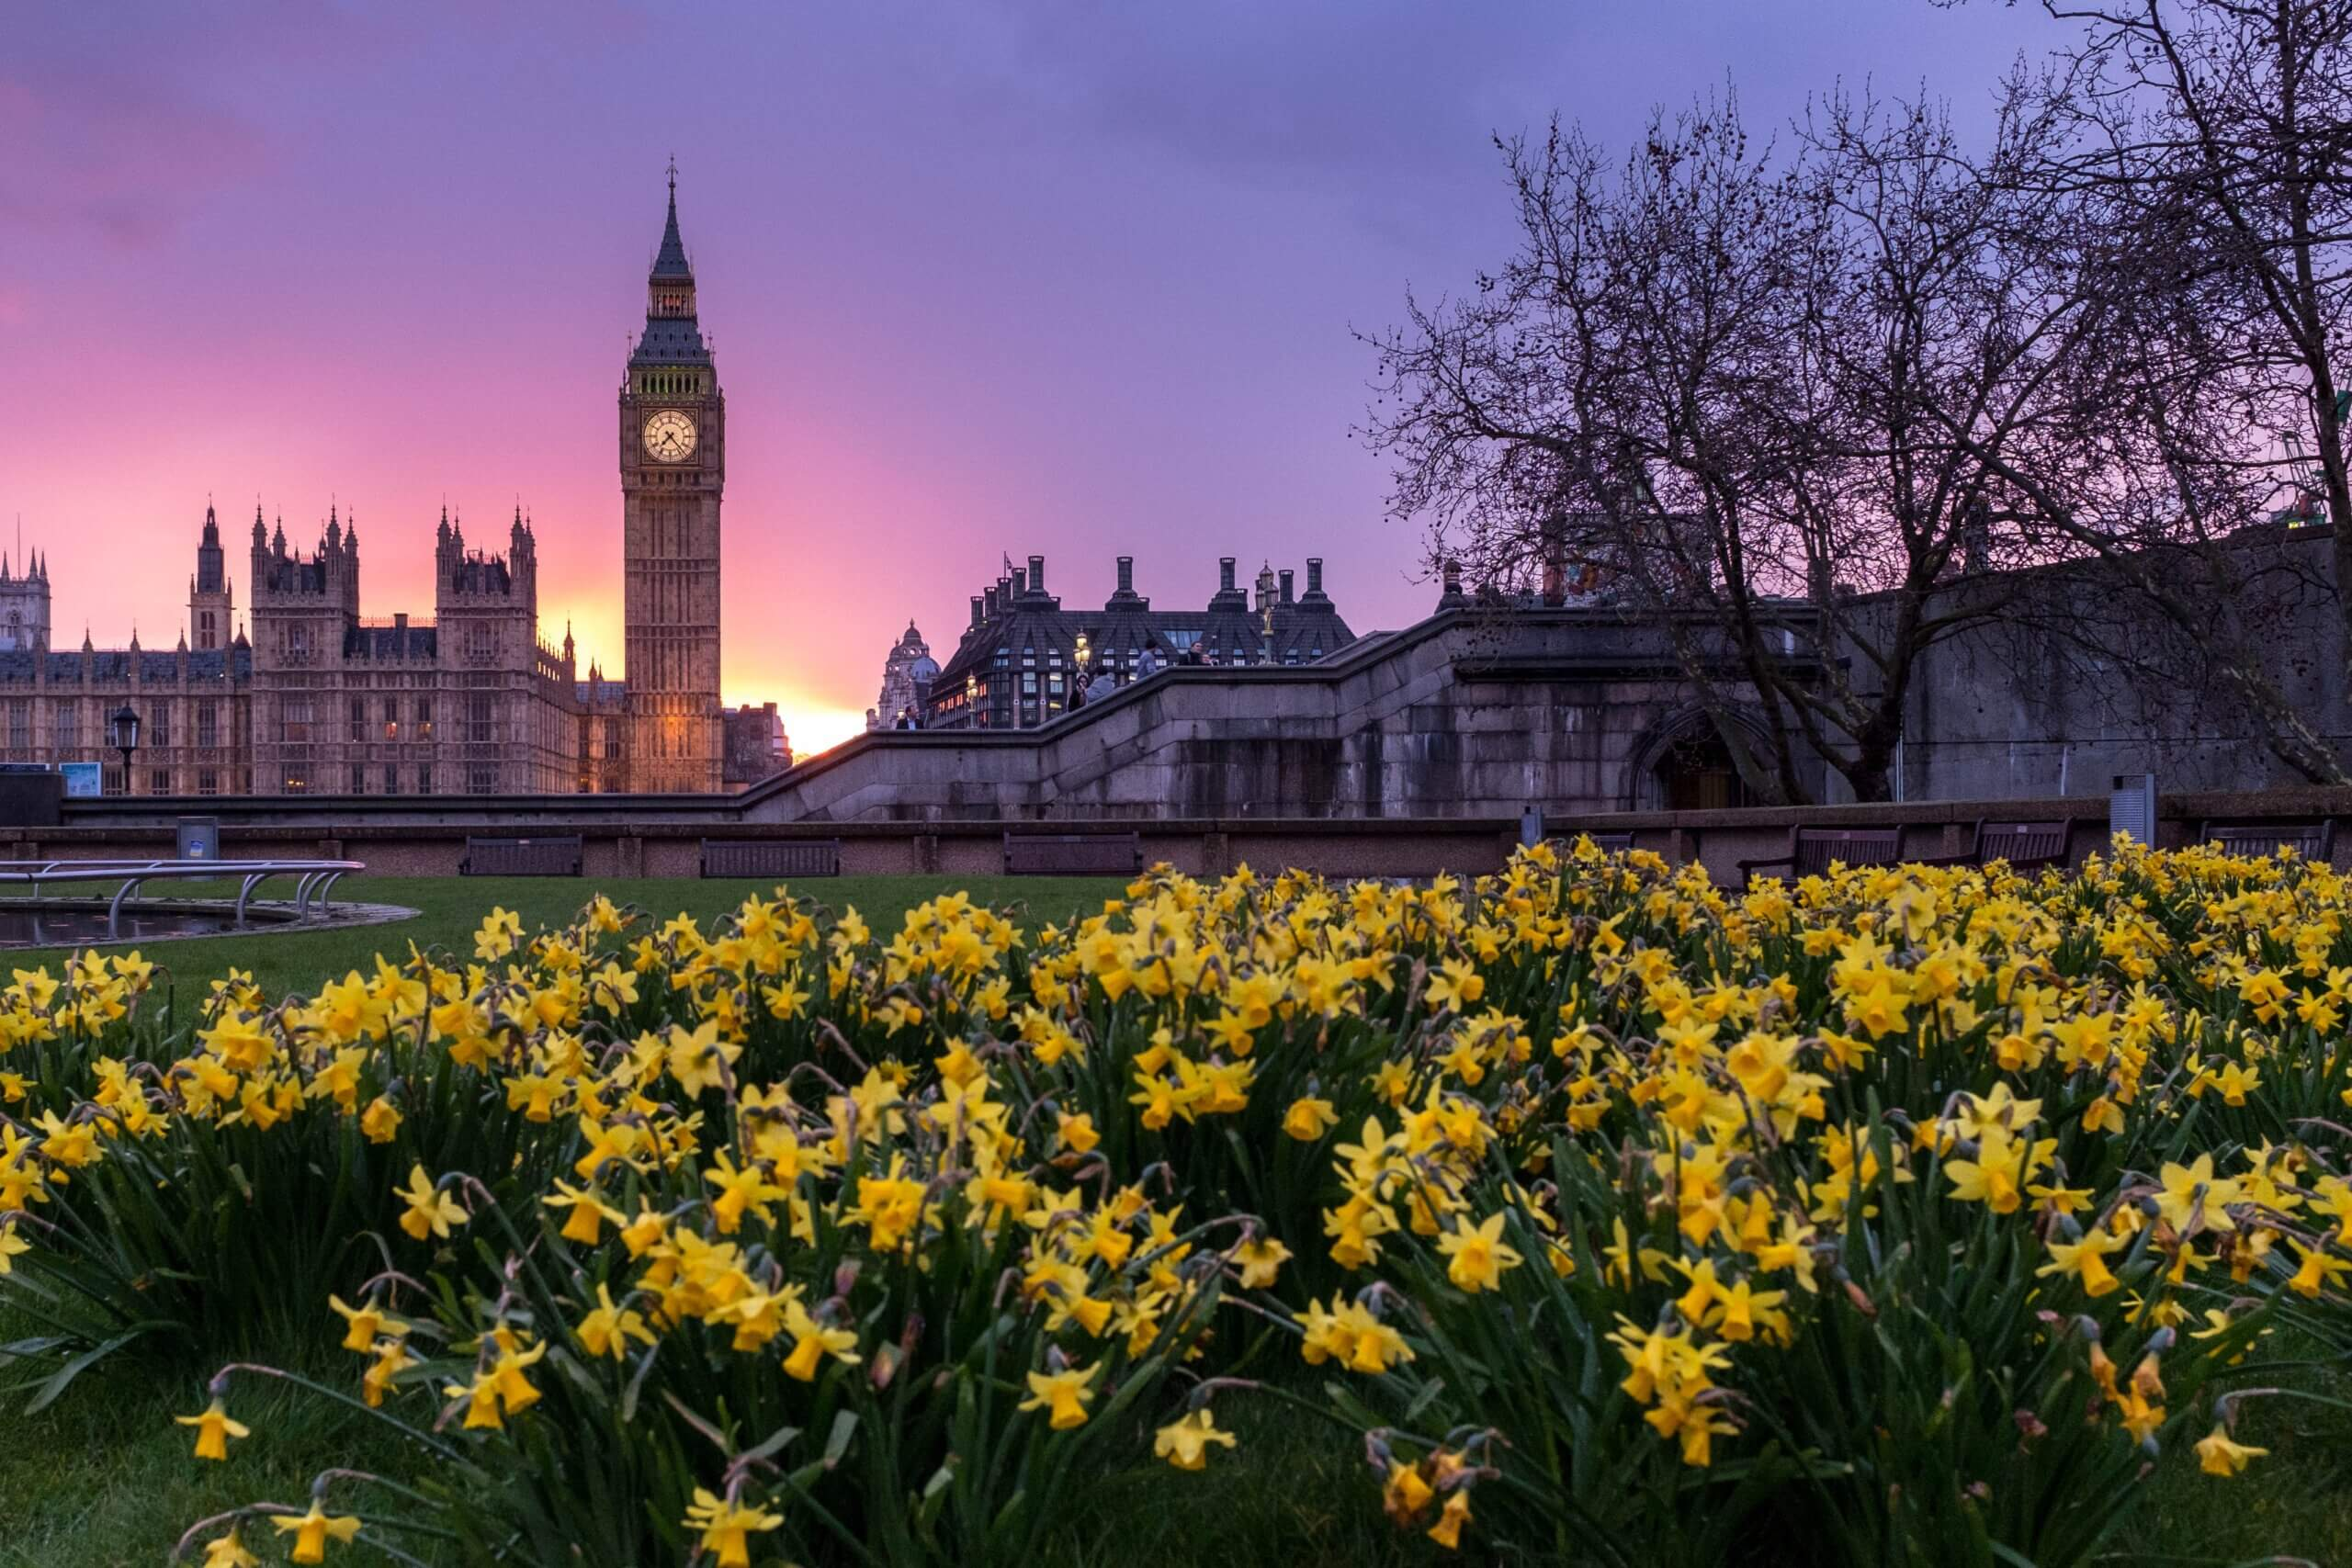 westminster london england united kingdom uk sunset big ben clock daffodils europe beautiful